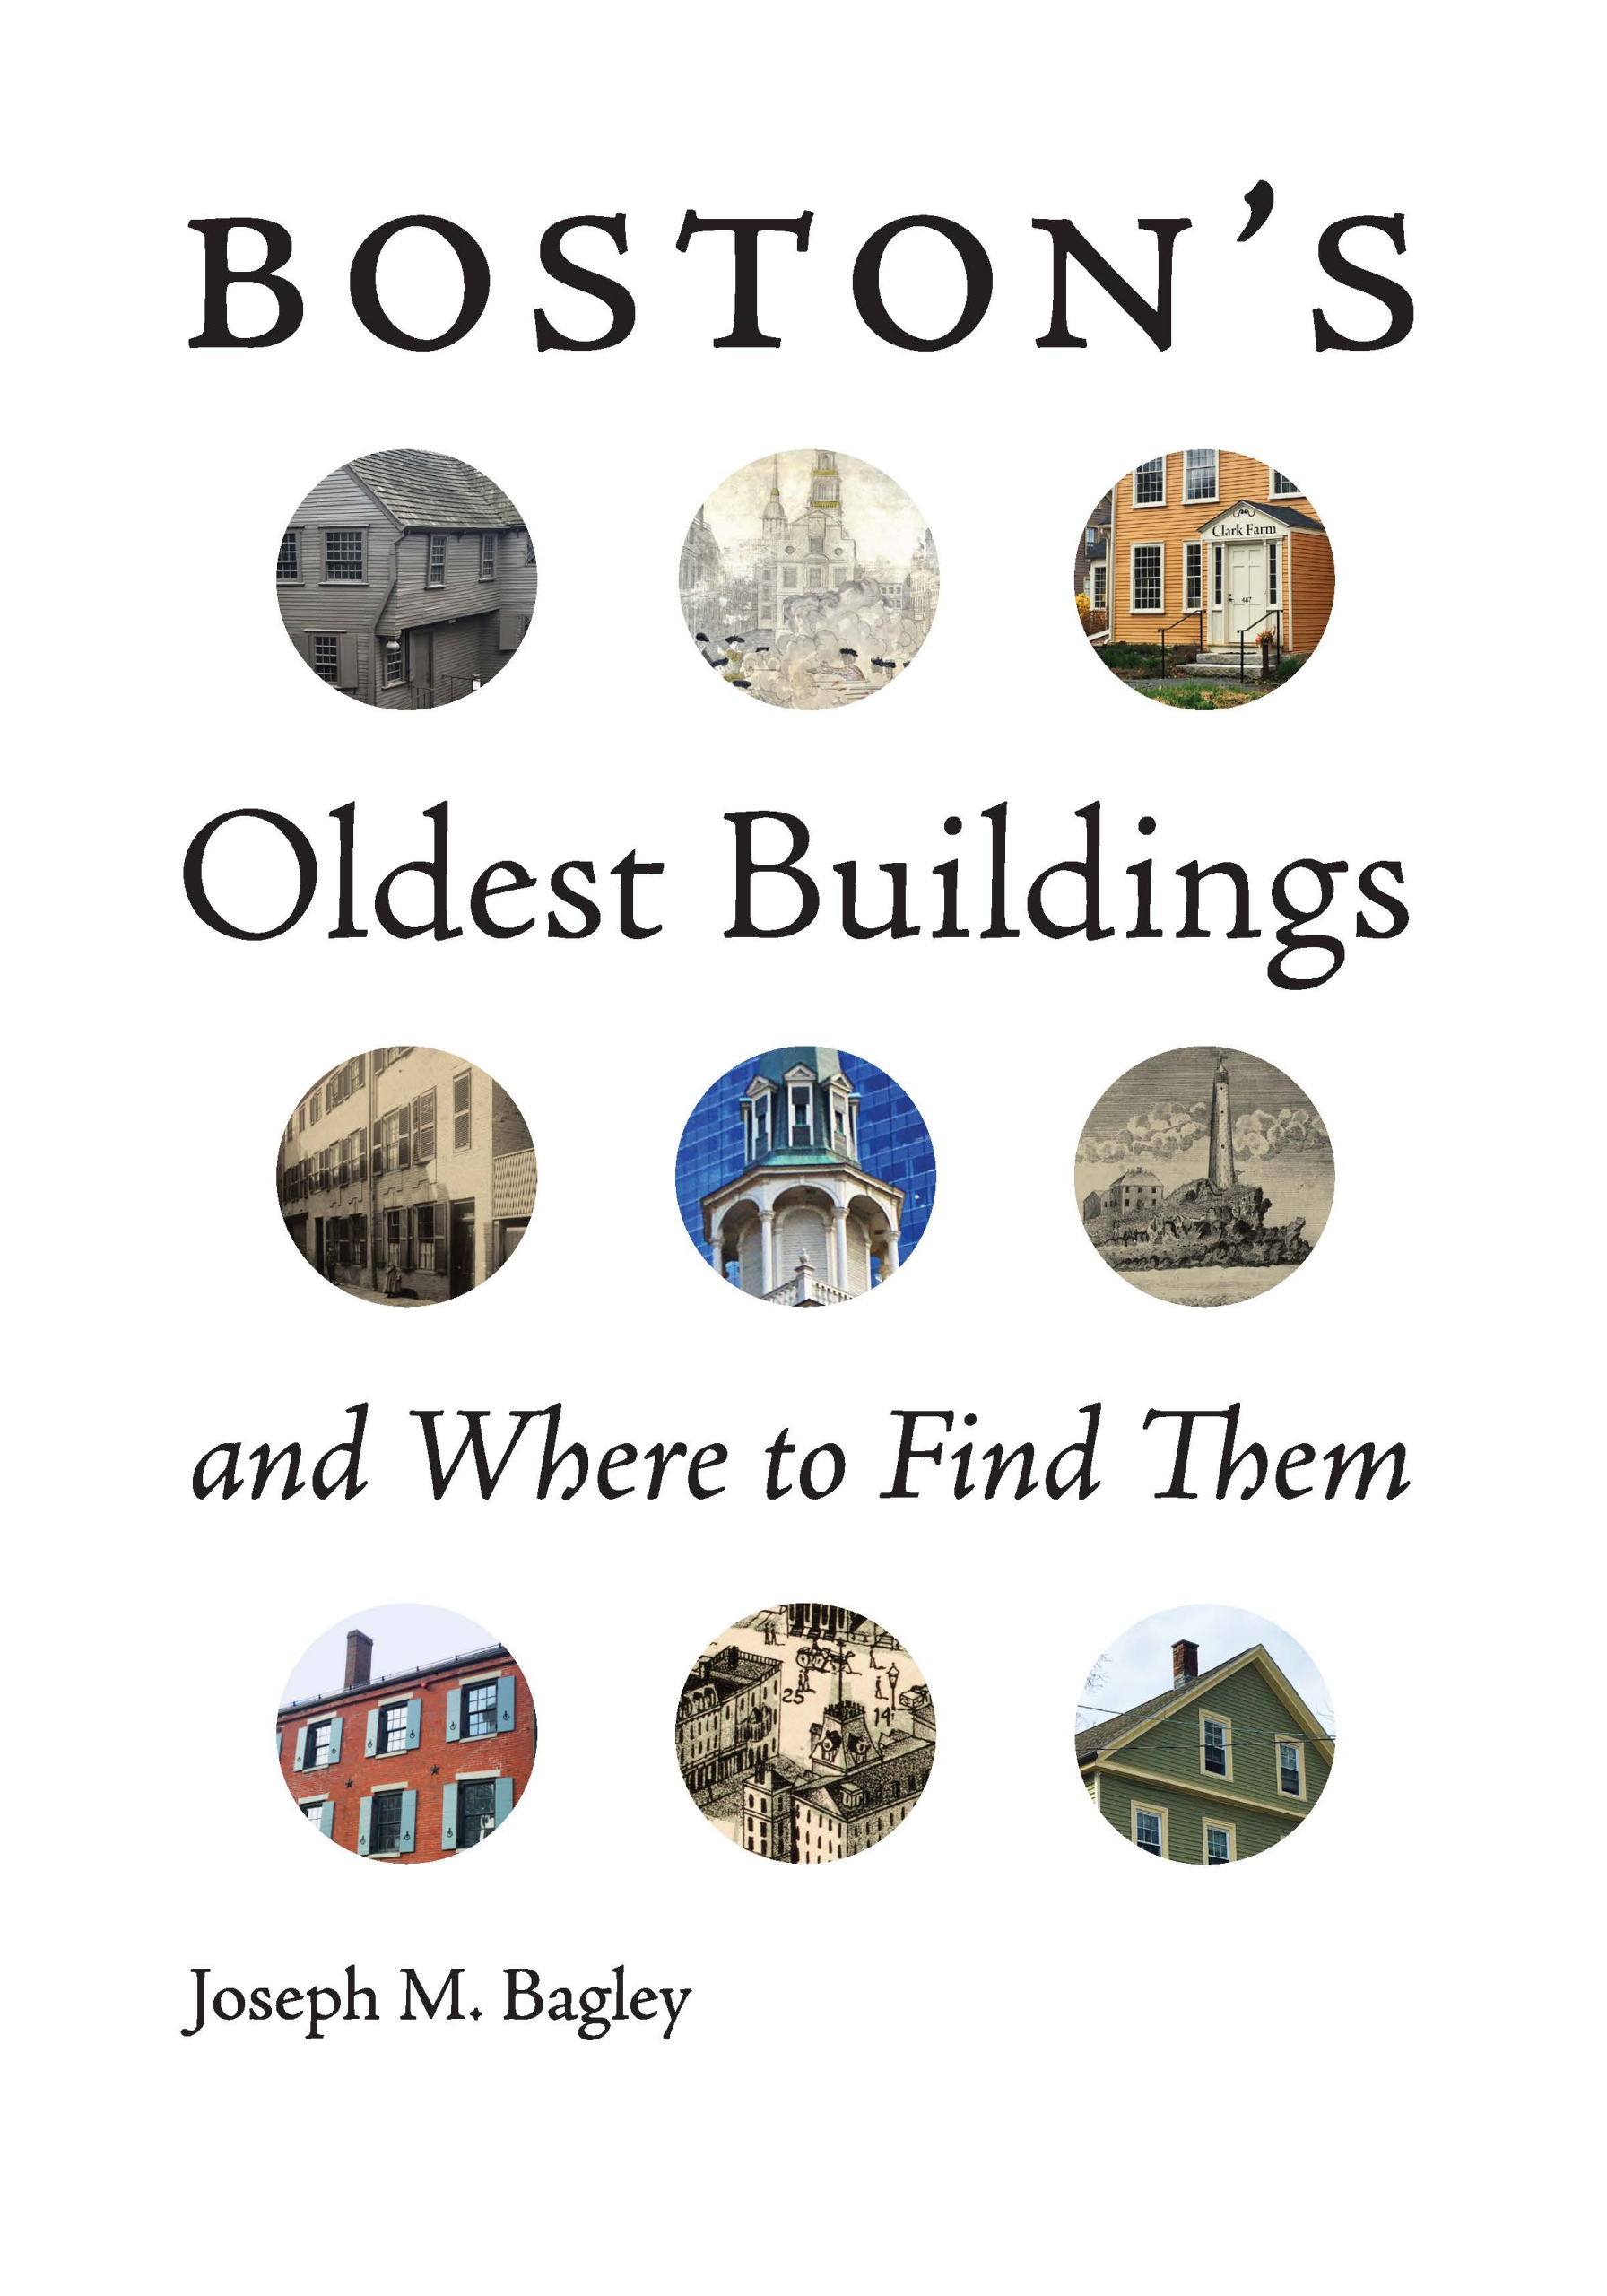 Boston's Oldest Buildings and Where to Find Them